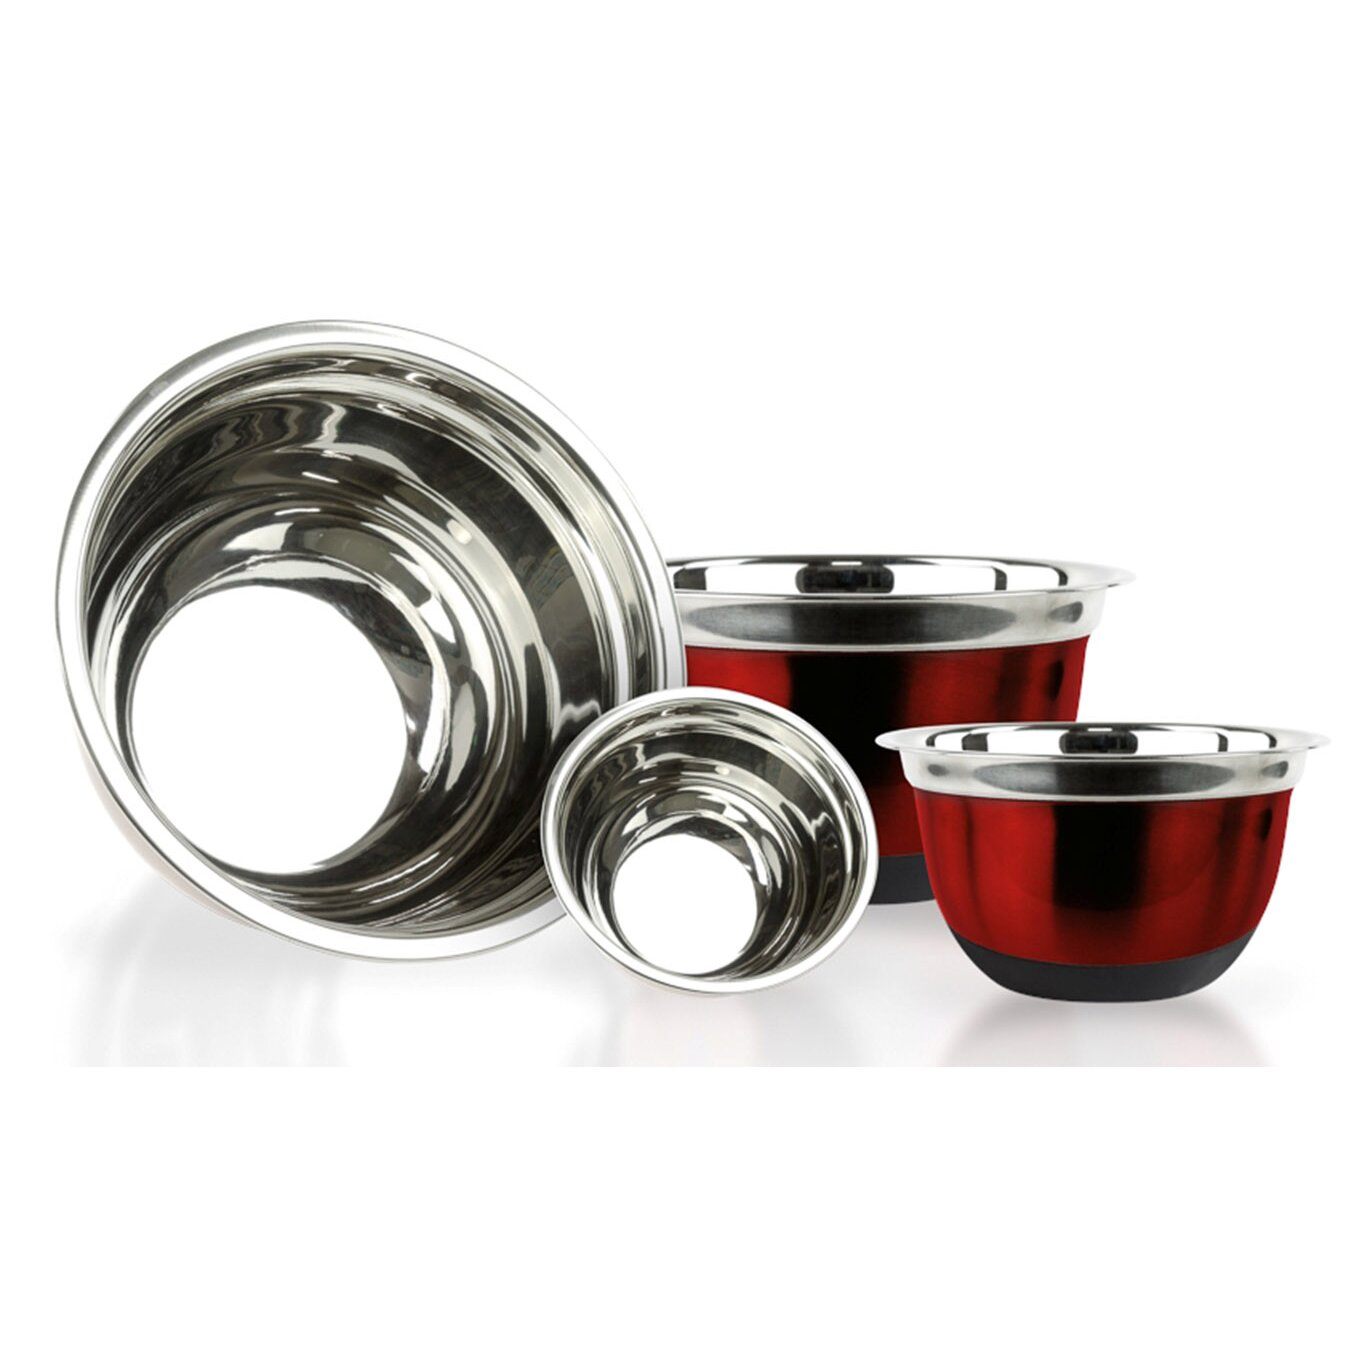 imperial home 4 piece stainless steel mixing bowl set reviews wayfair. Black Bedroom Furniture Sets. Home Design Ideas